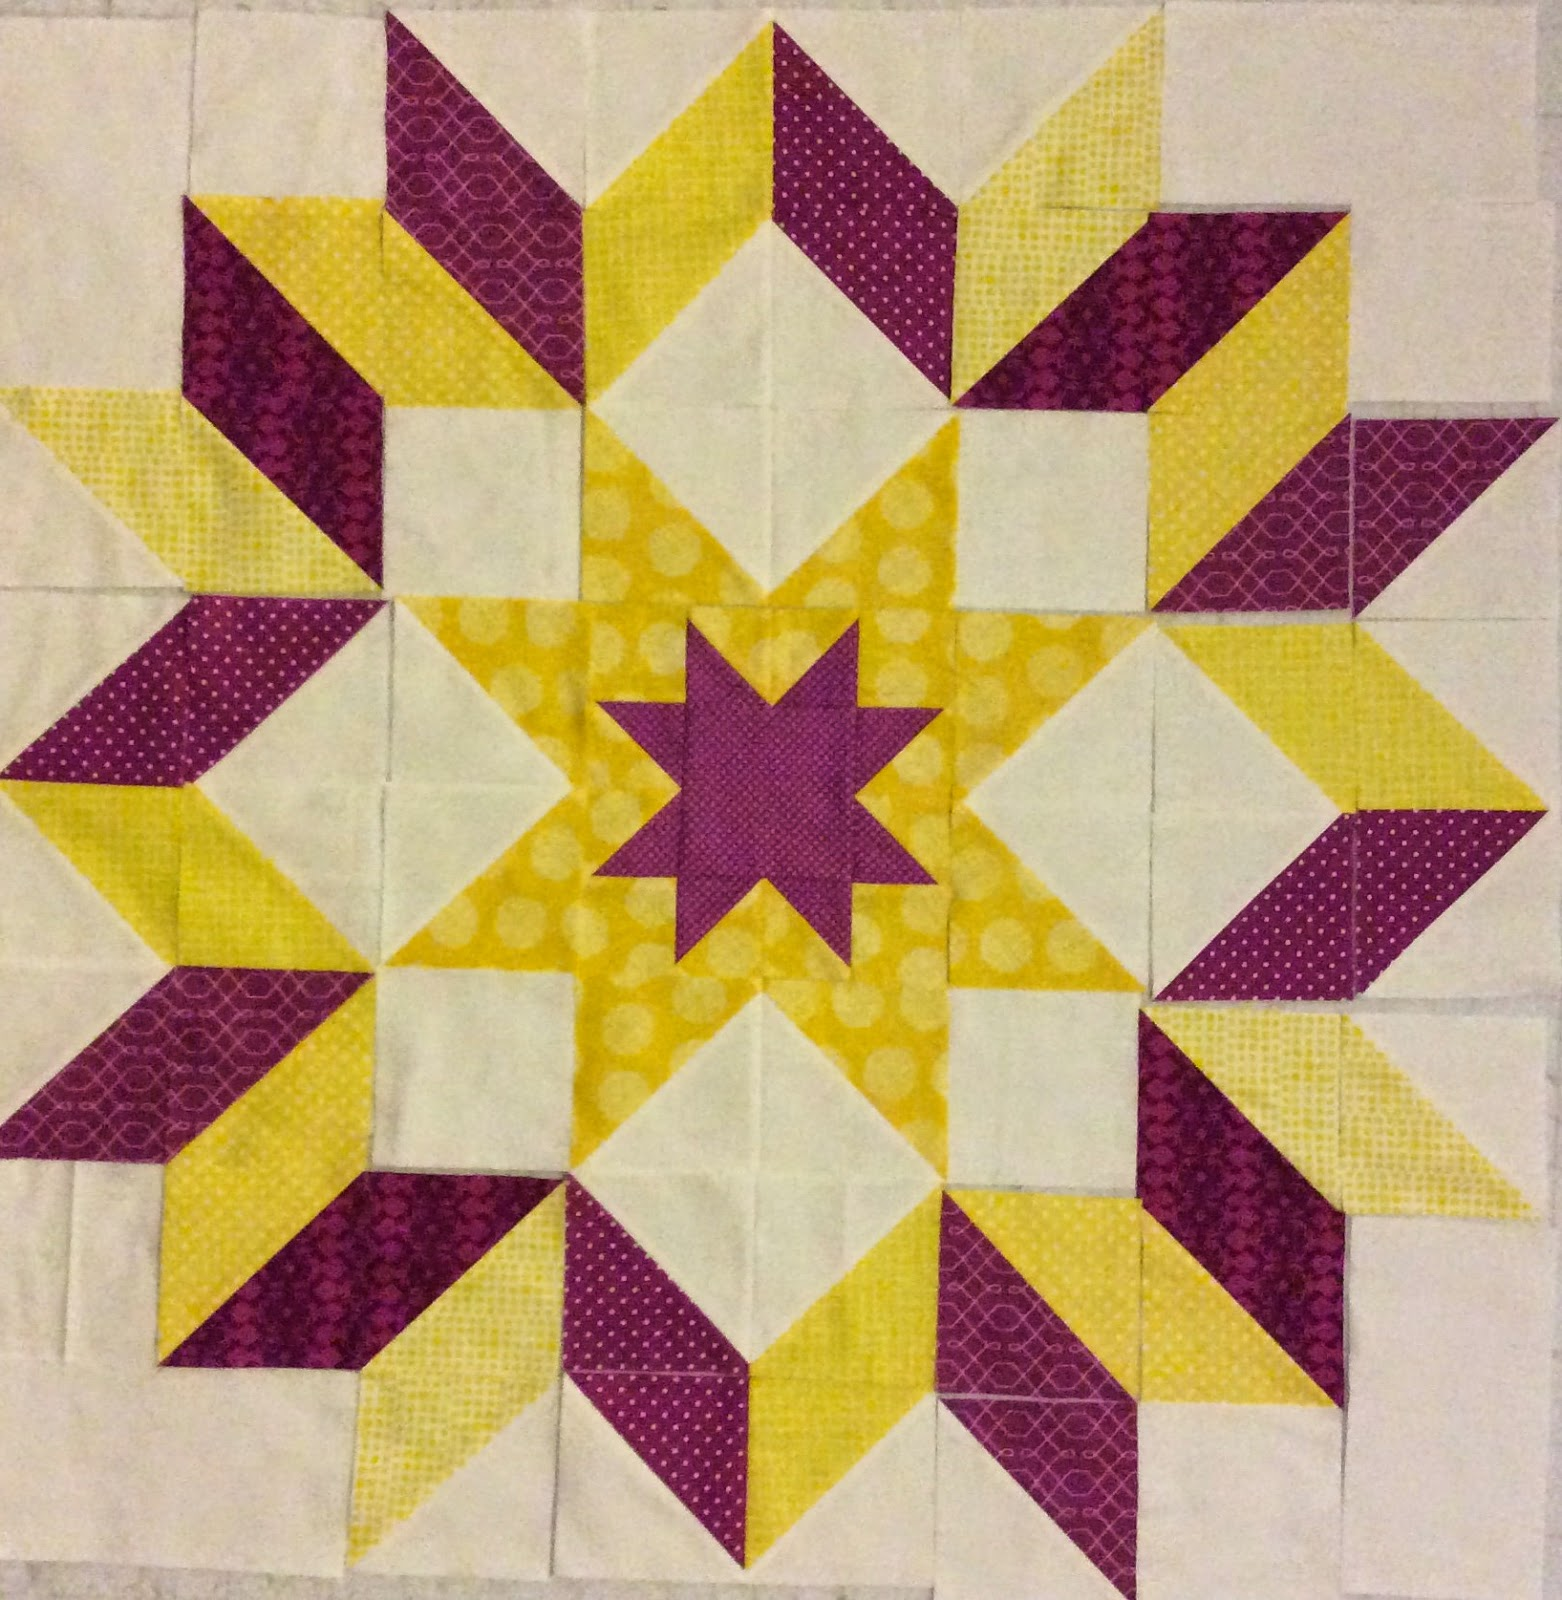 The Starburst Quilt plum and yellow